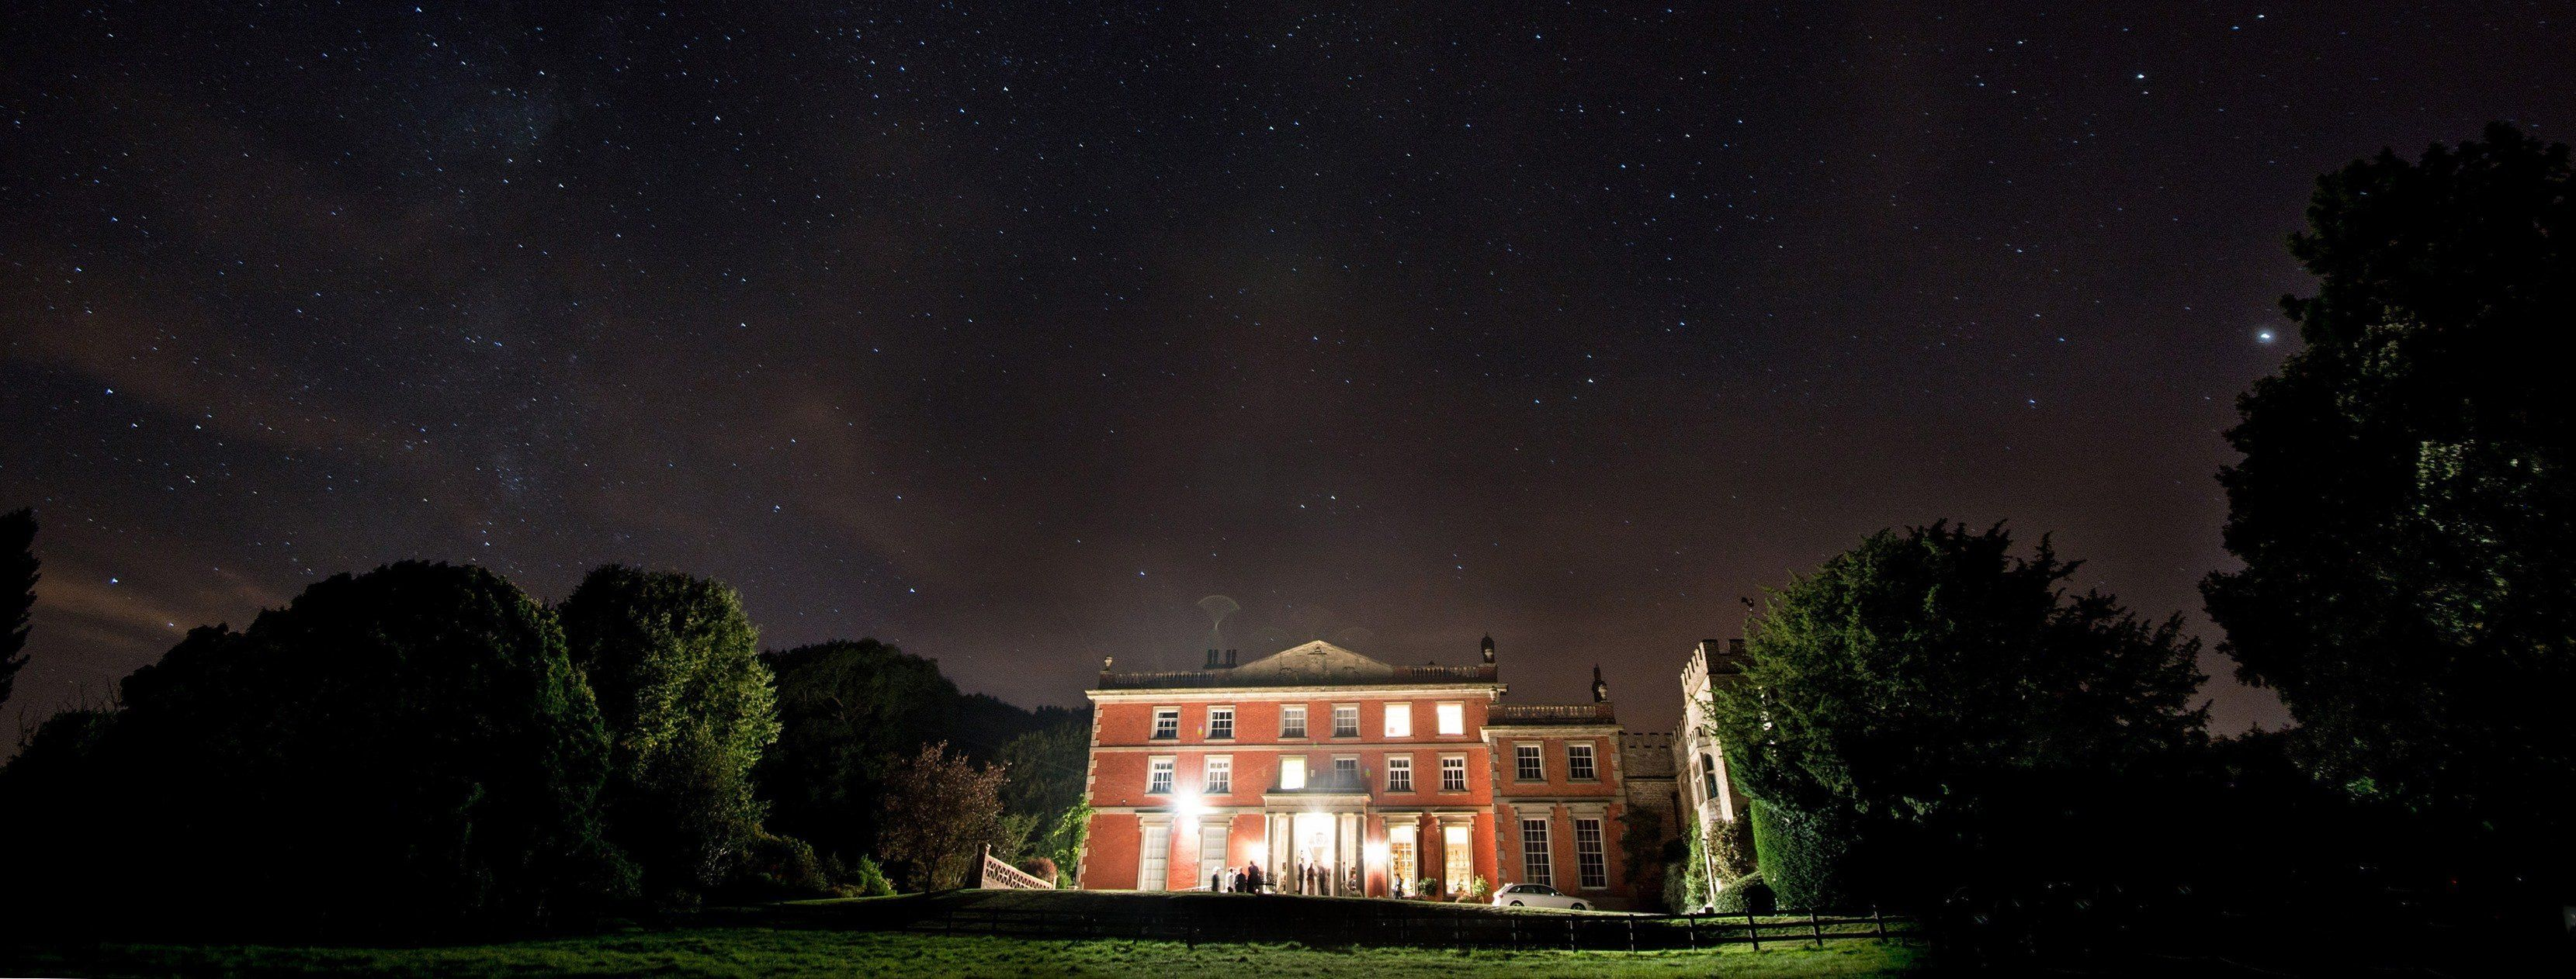 wedding venues in herefordshire homme house weddings